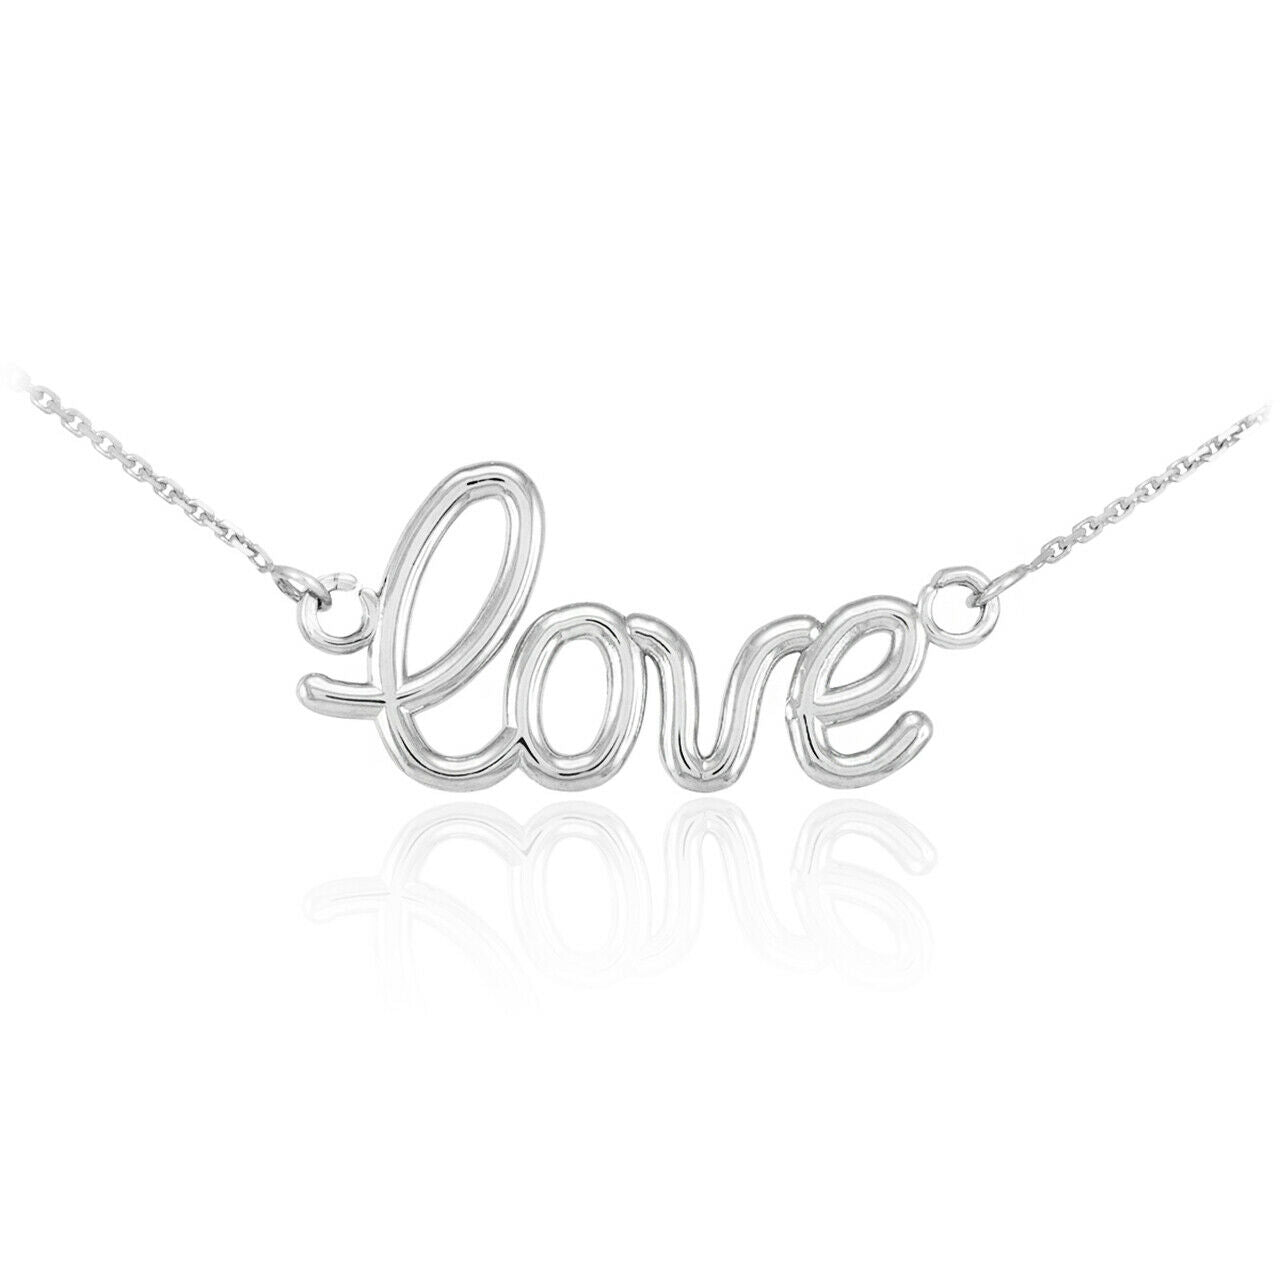 "925 Sterling Silver ""Love"" Script Necklace in 16"", 18"", 20"", 22"" Made in USA"